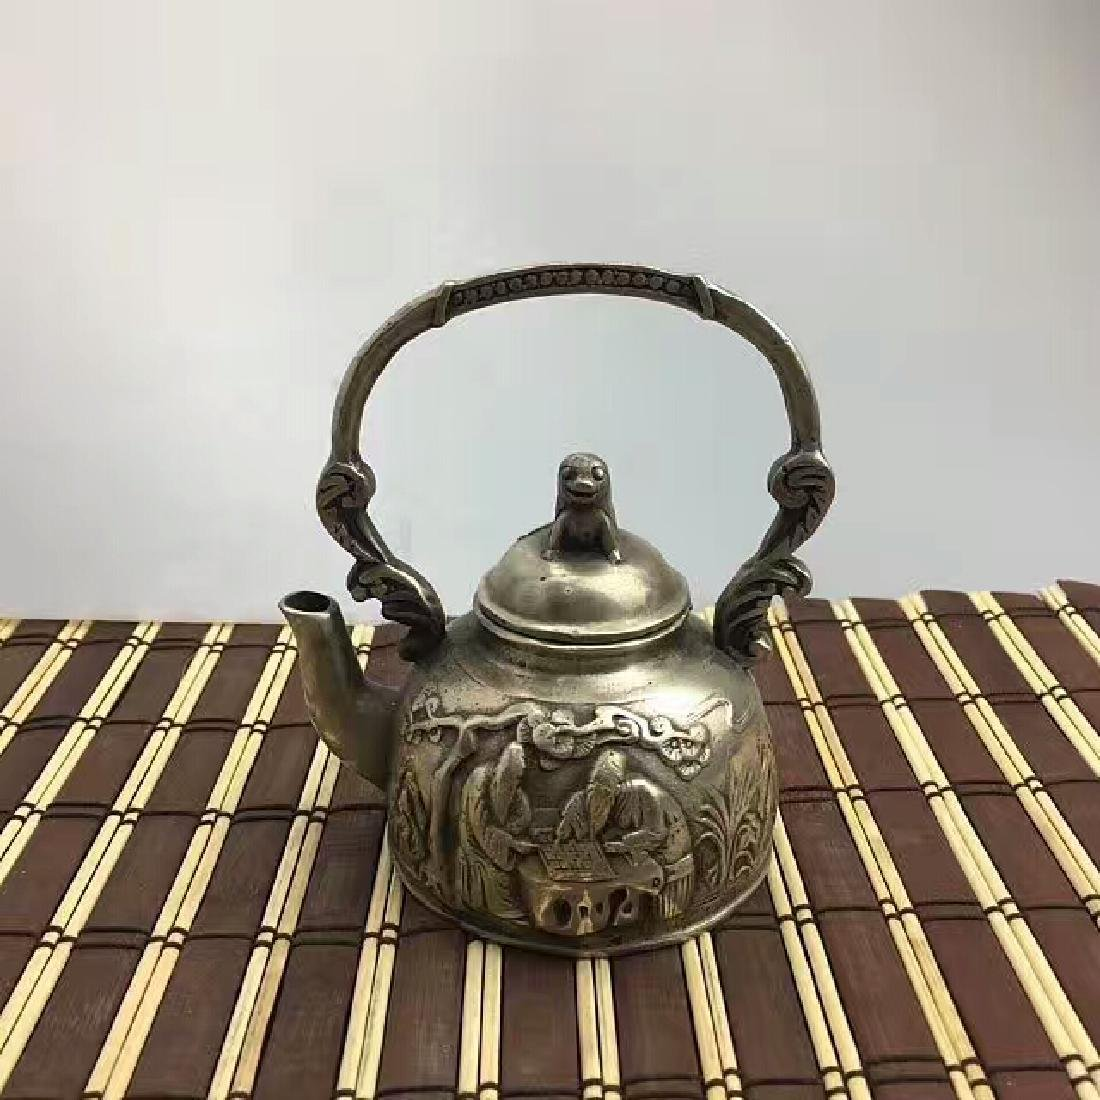 Chinese Antique Copper-Nickel Wine Pot With Loop Handle